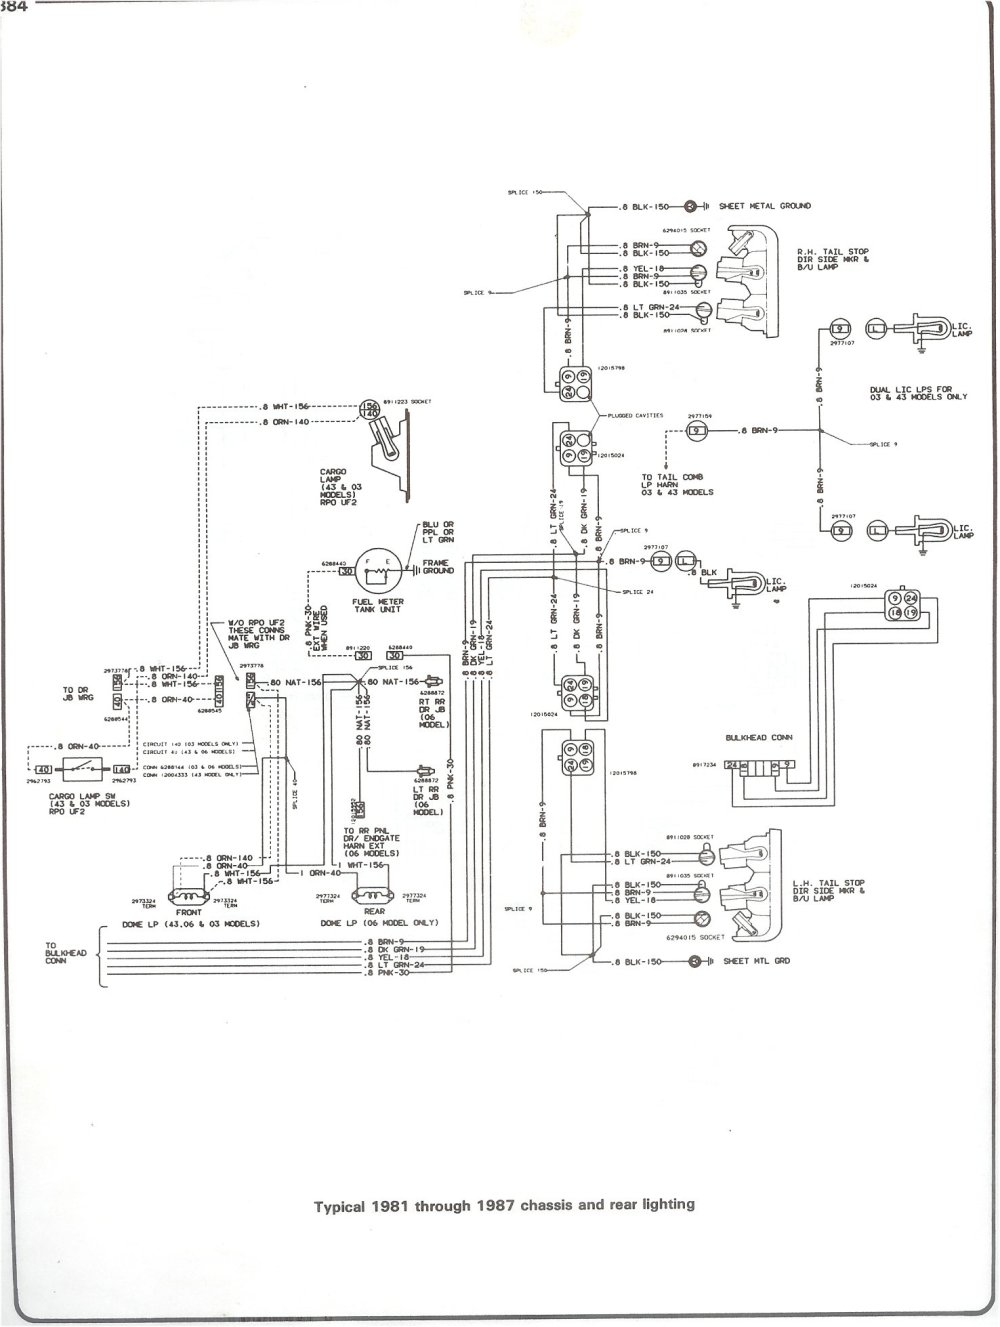 medium resolution of ignition switch wiring diagram for 91 chevy 1500 pickup wiring library ignition switch wiring diagram for 91 chevy 1500 pickup